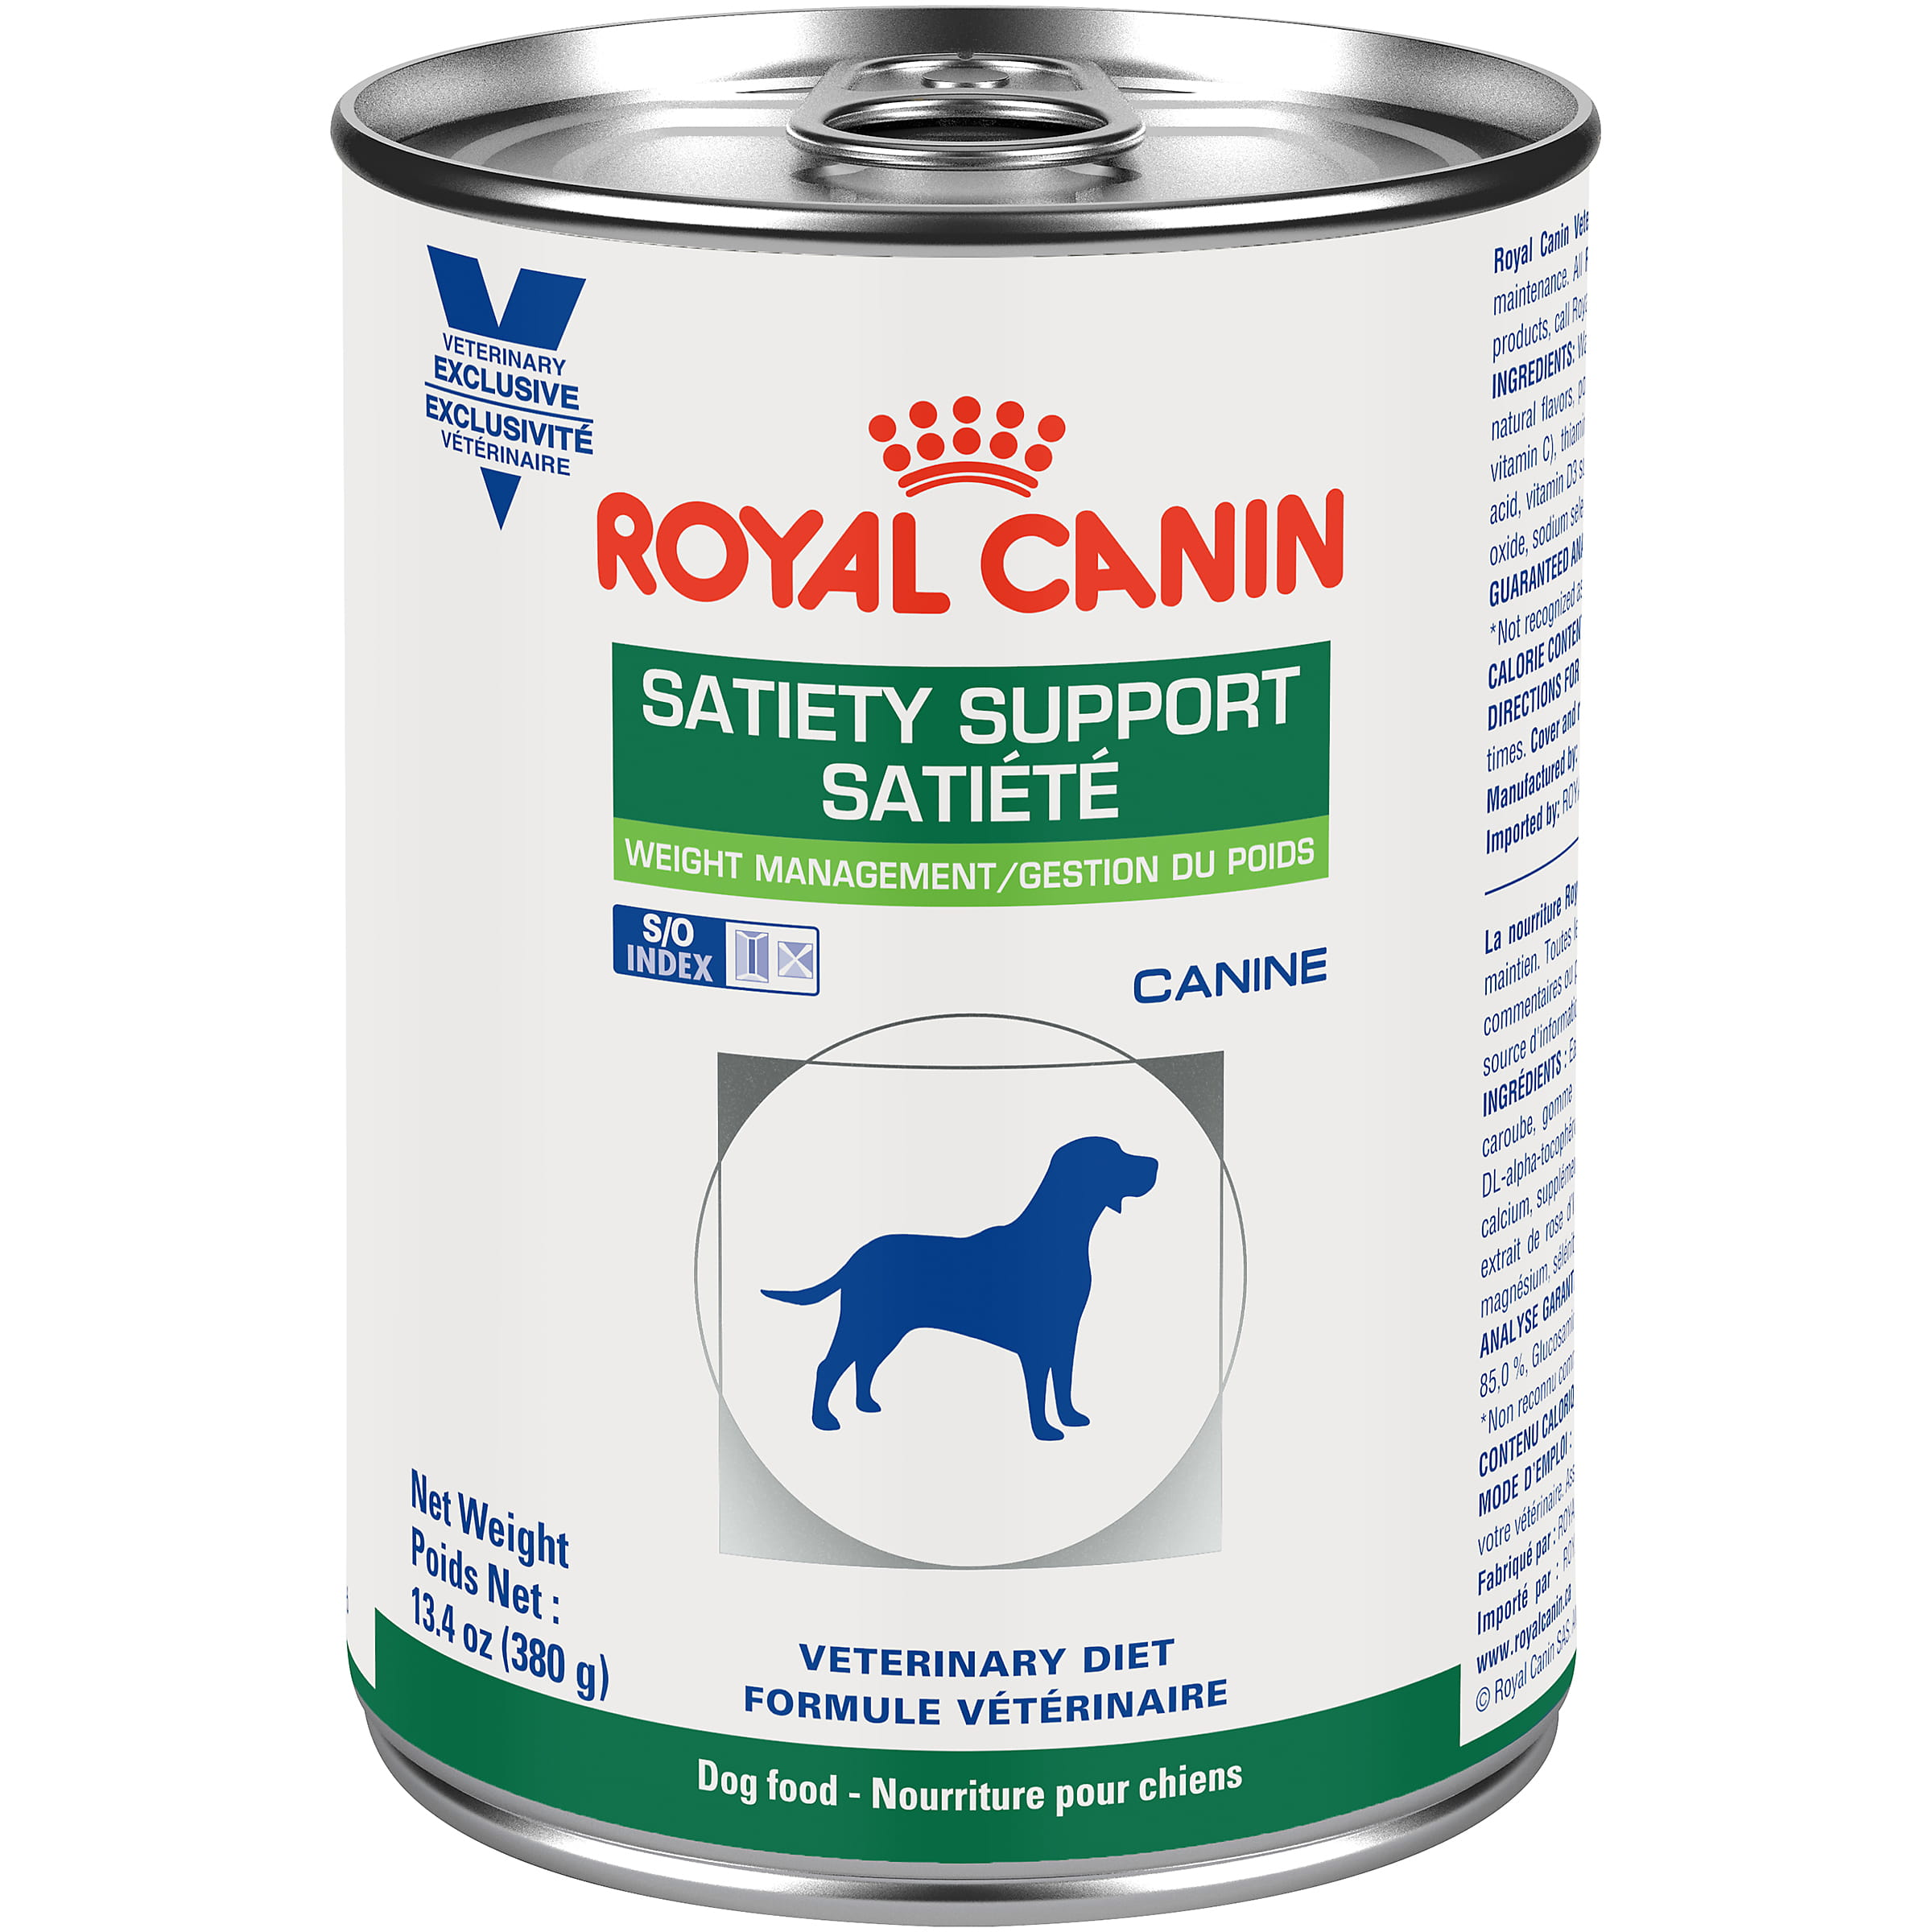 Royal Canin Veterinary Diet Canine Satiety Support Weight Management Canned Dog Food